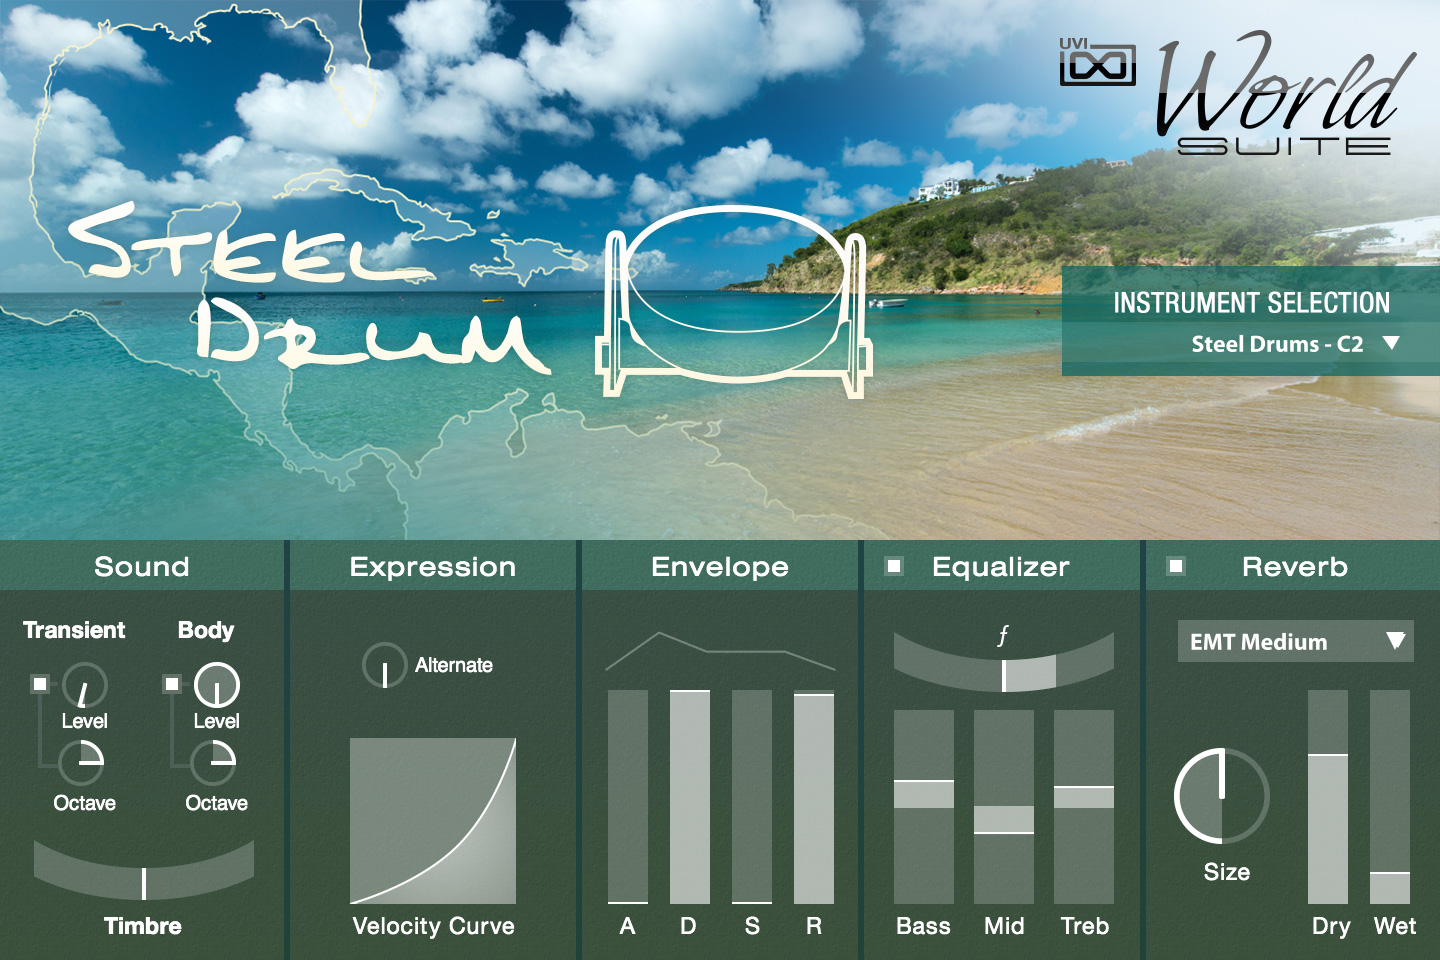 UVI World Suite | Steel Drum UI